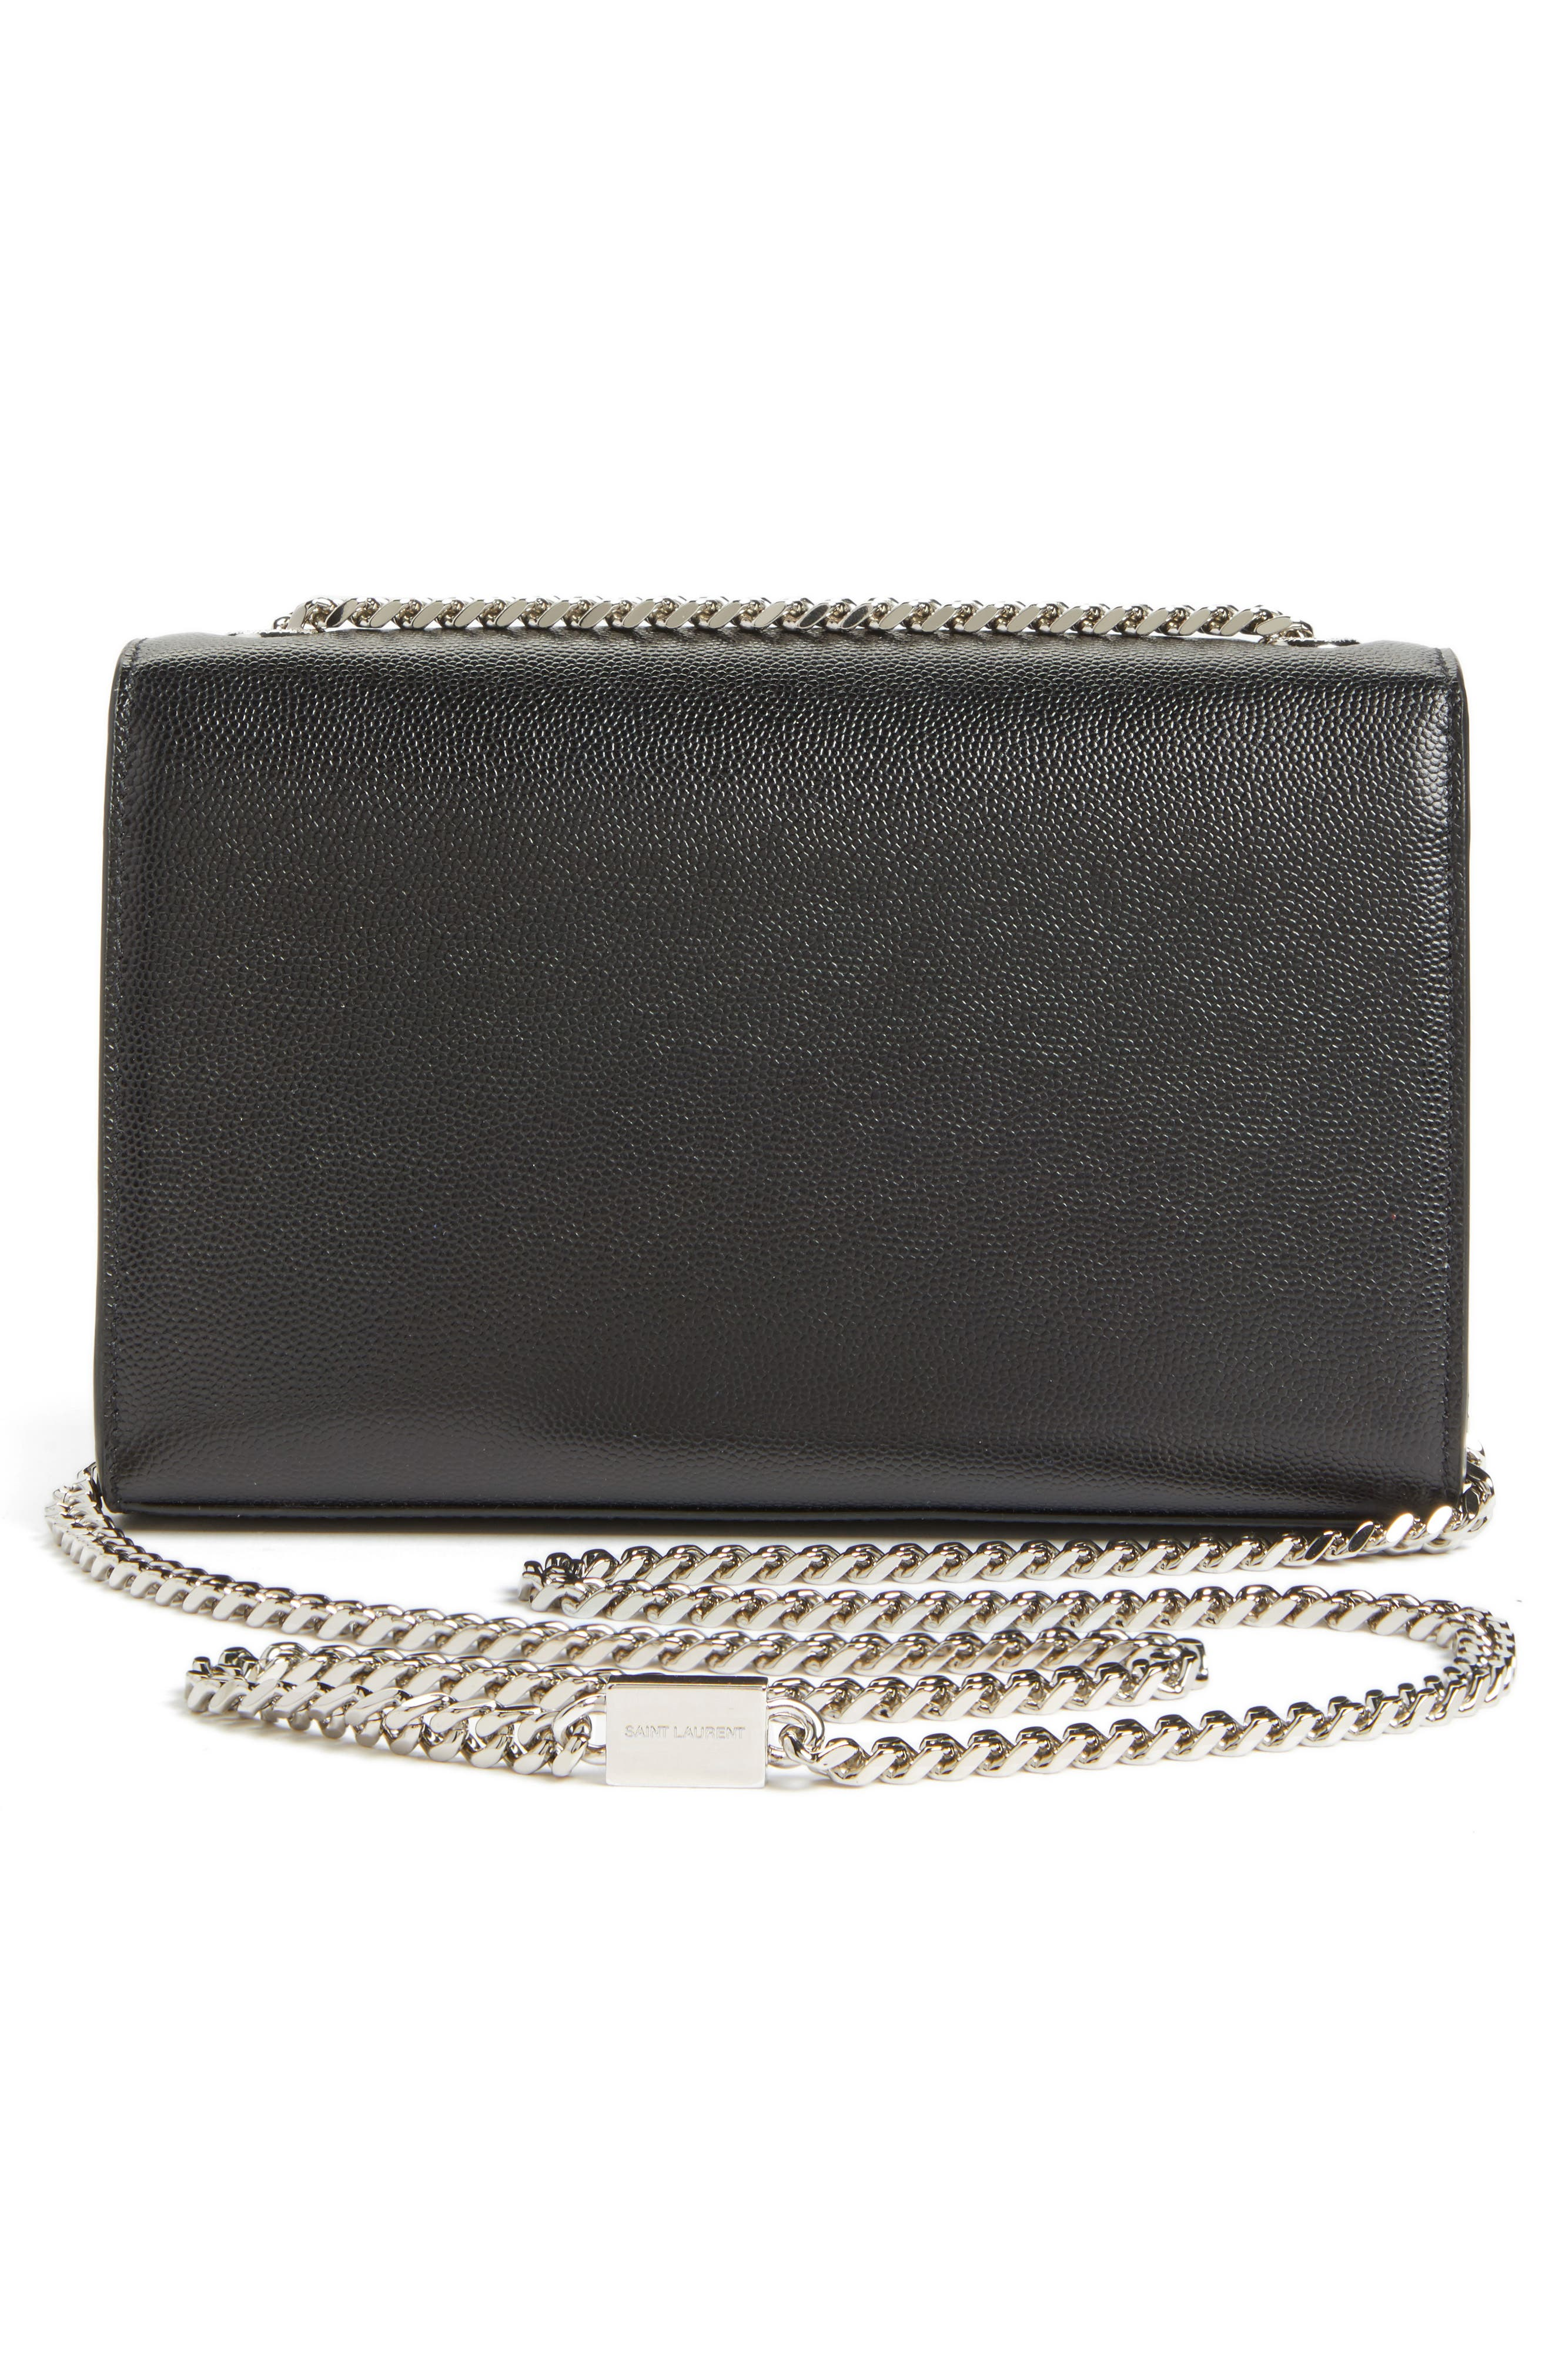 SAINT LAURENT, Small Kate Grained Leather Crossbody Bag, Alternate thumbnail 3, color, NOIR